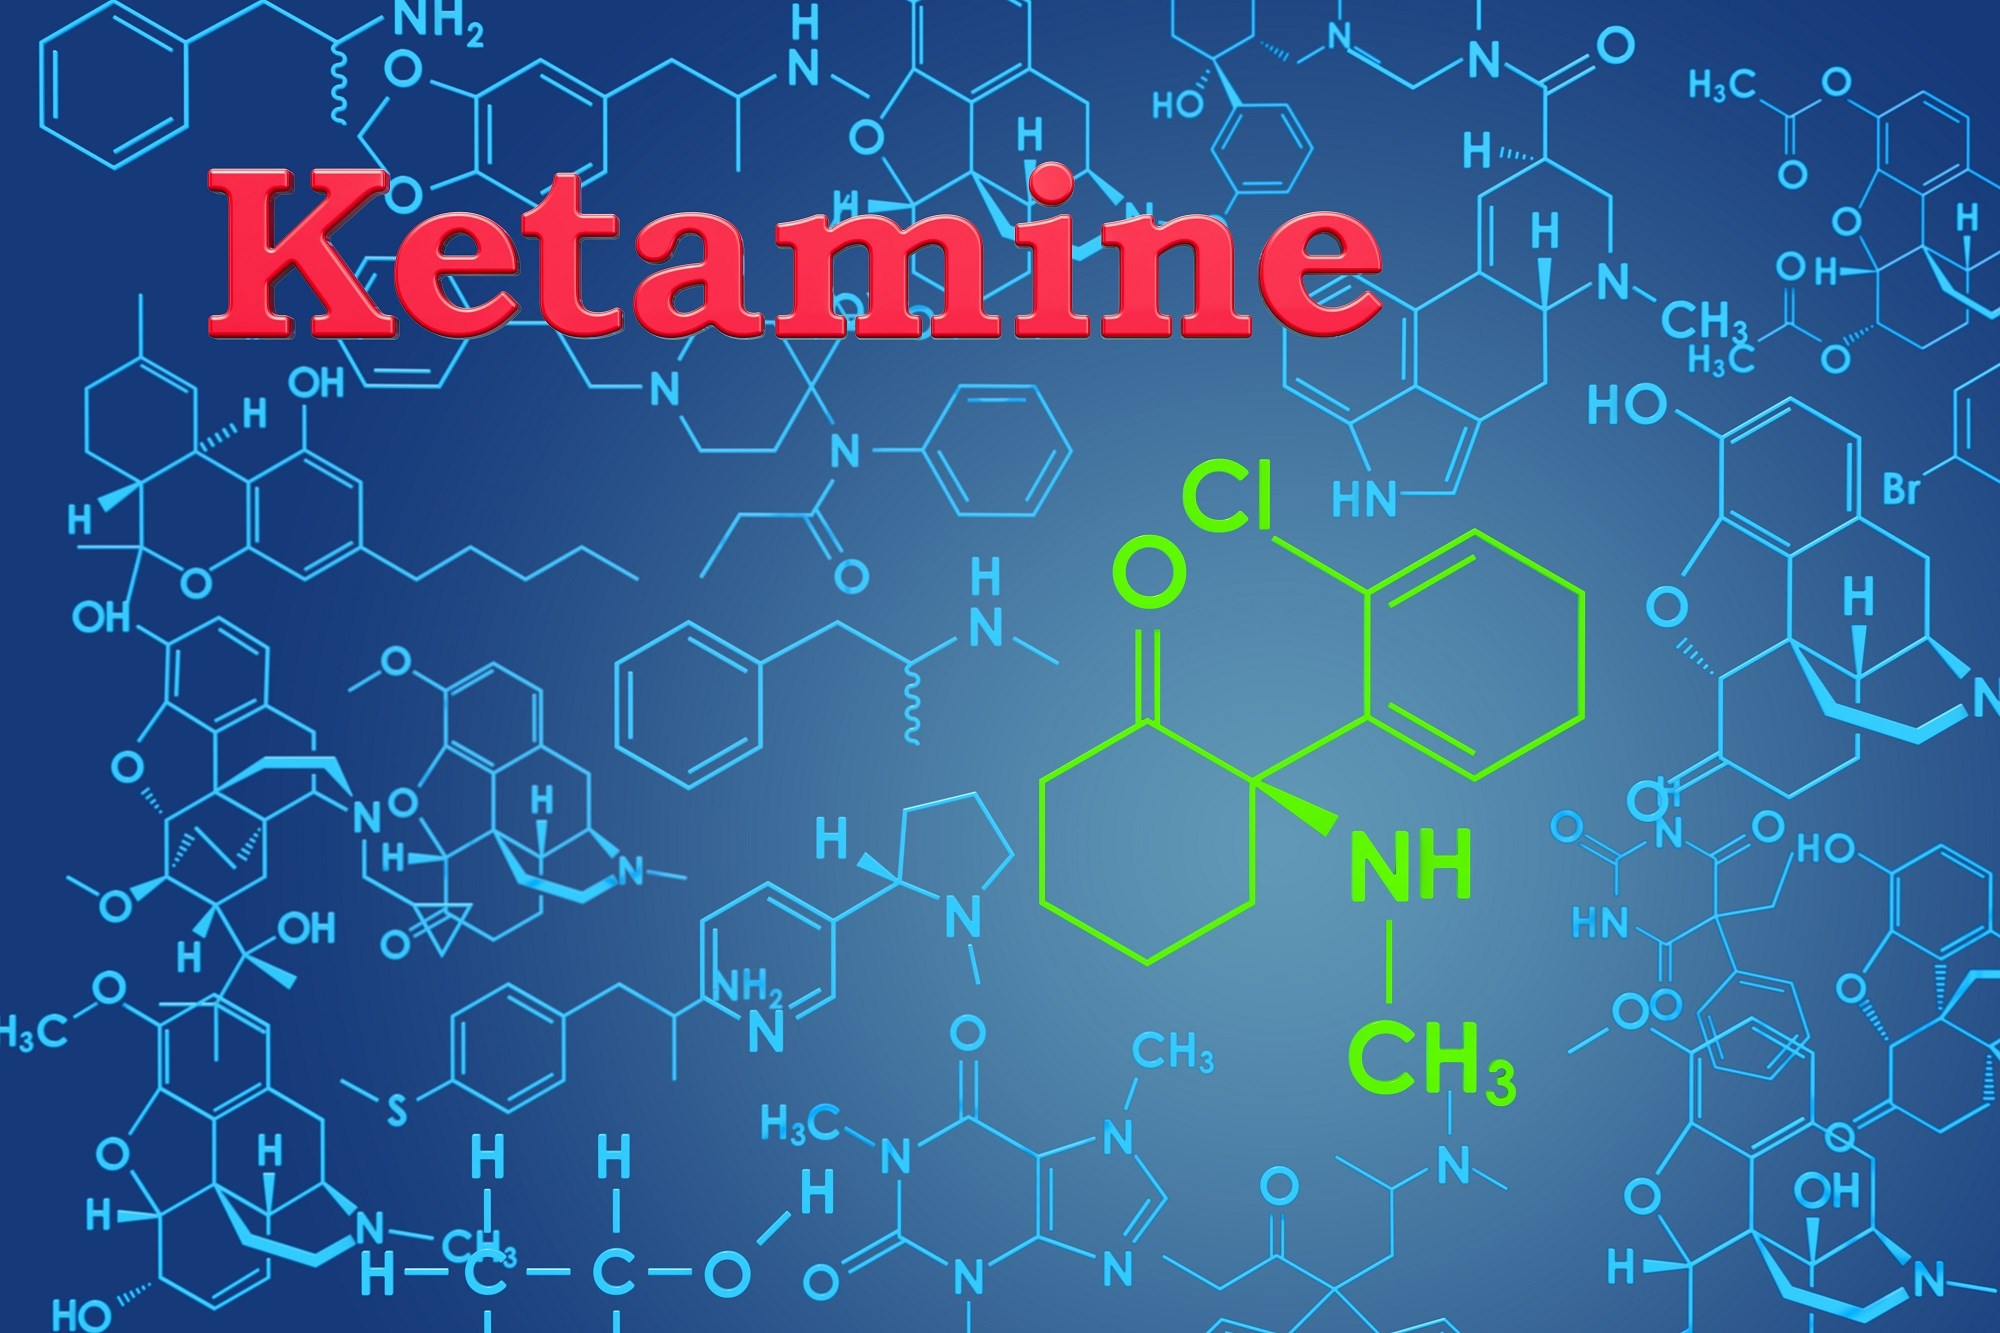 Ketamine: Mechanisms of Action, Uses in Pain Medicine, and Side Effects